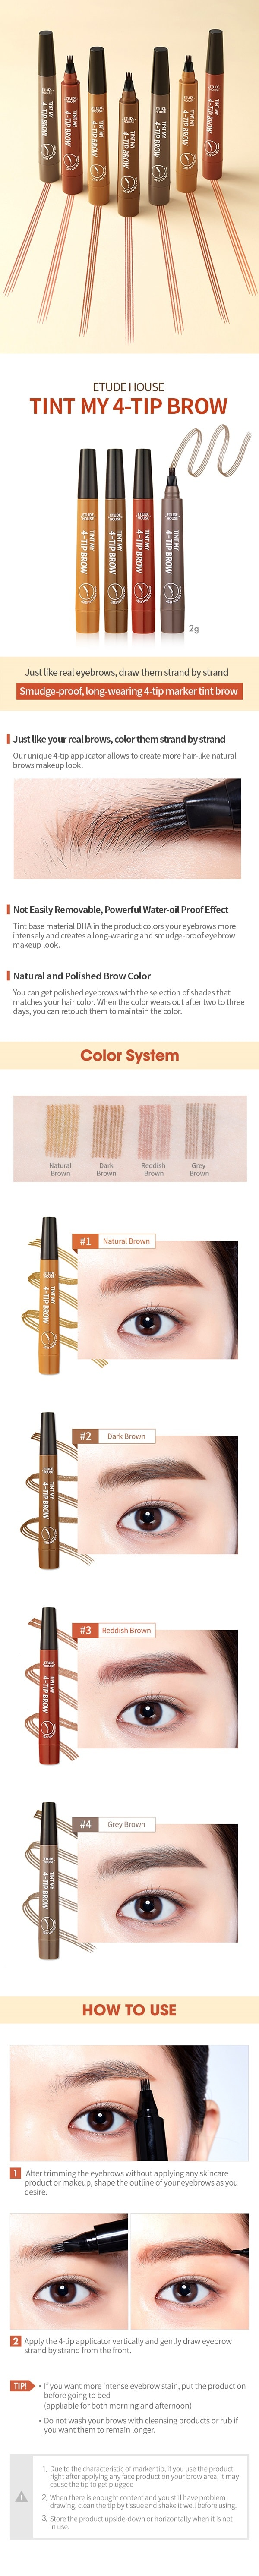 ETUDE HOUSE Tint My 4 Tip Brow - 1 Natural Brown